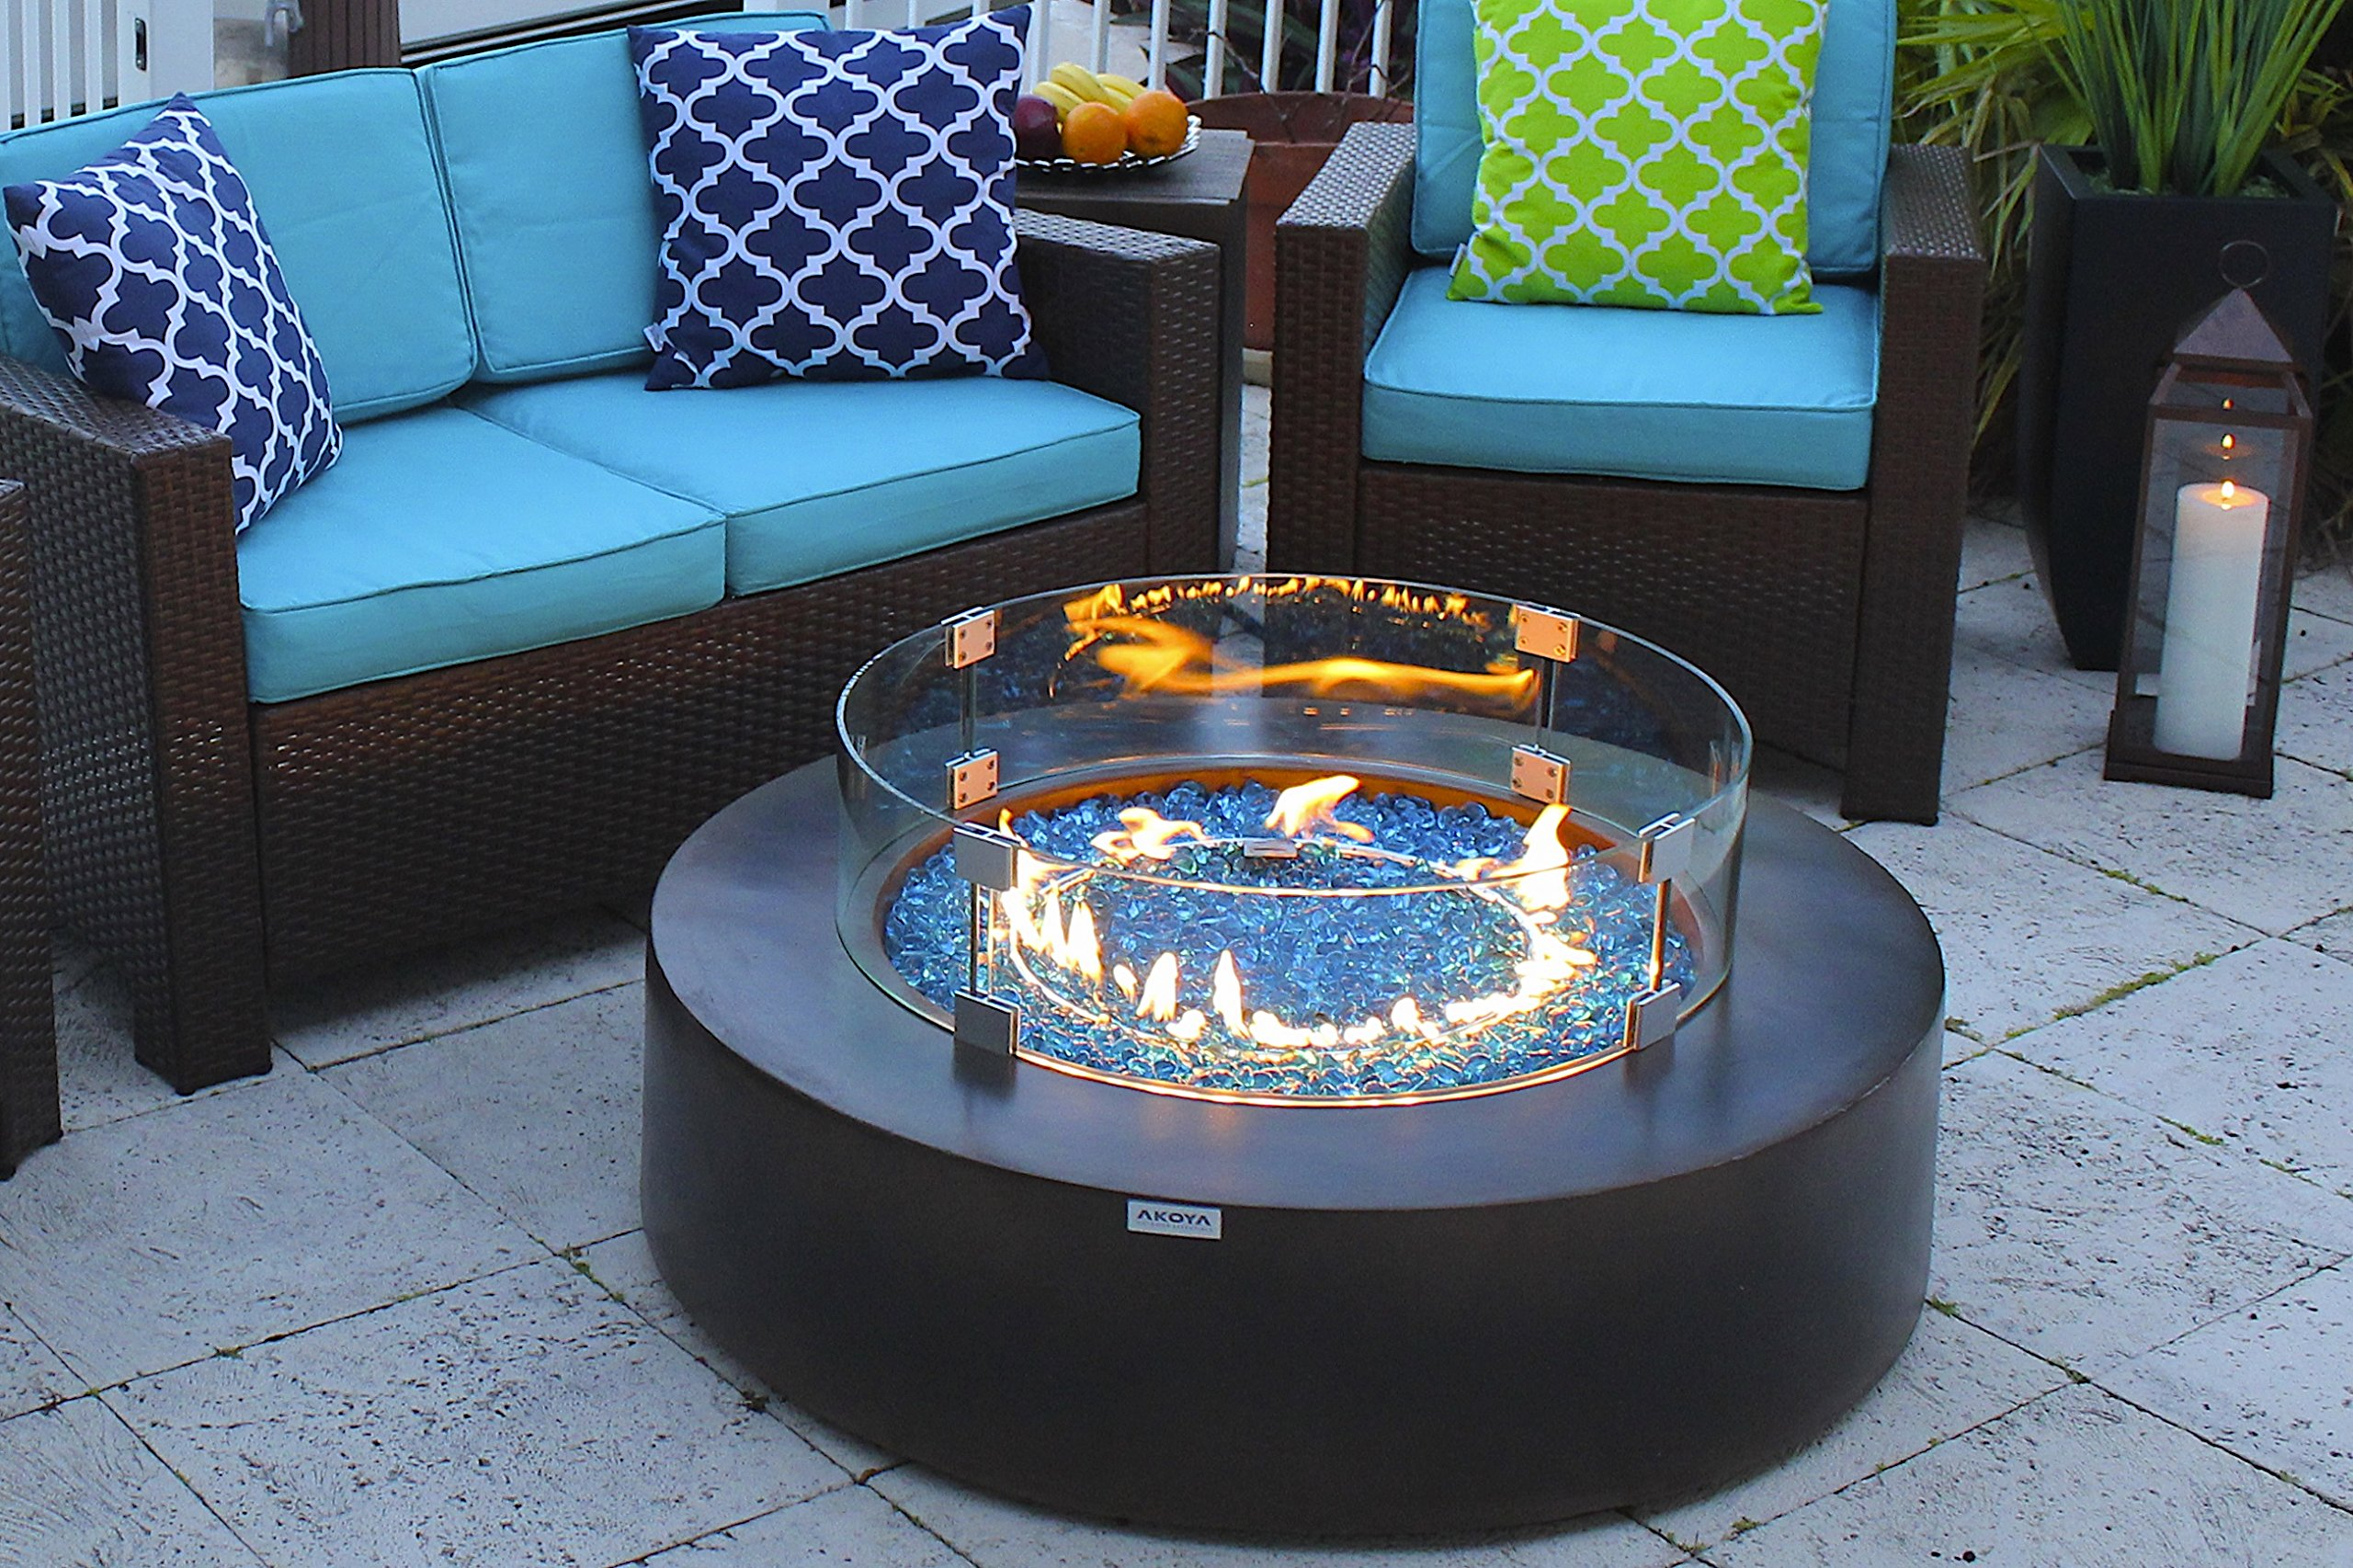 AKOYA Outdoor Essentials 42'' Round Modern Concrete Fire Pit Table w/Glass Guard and Crystals Set (Caribbean Blue) by AKOYA Outdoor Essentials